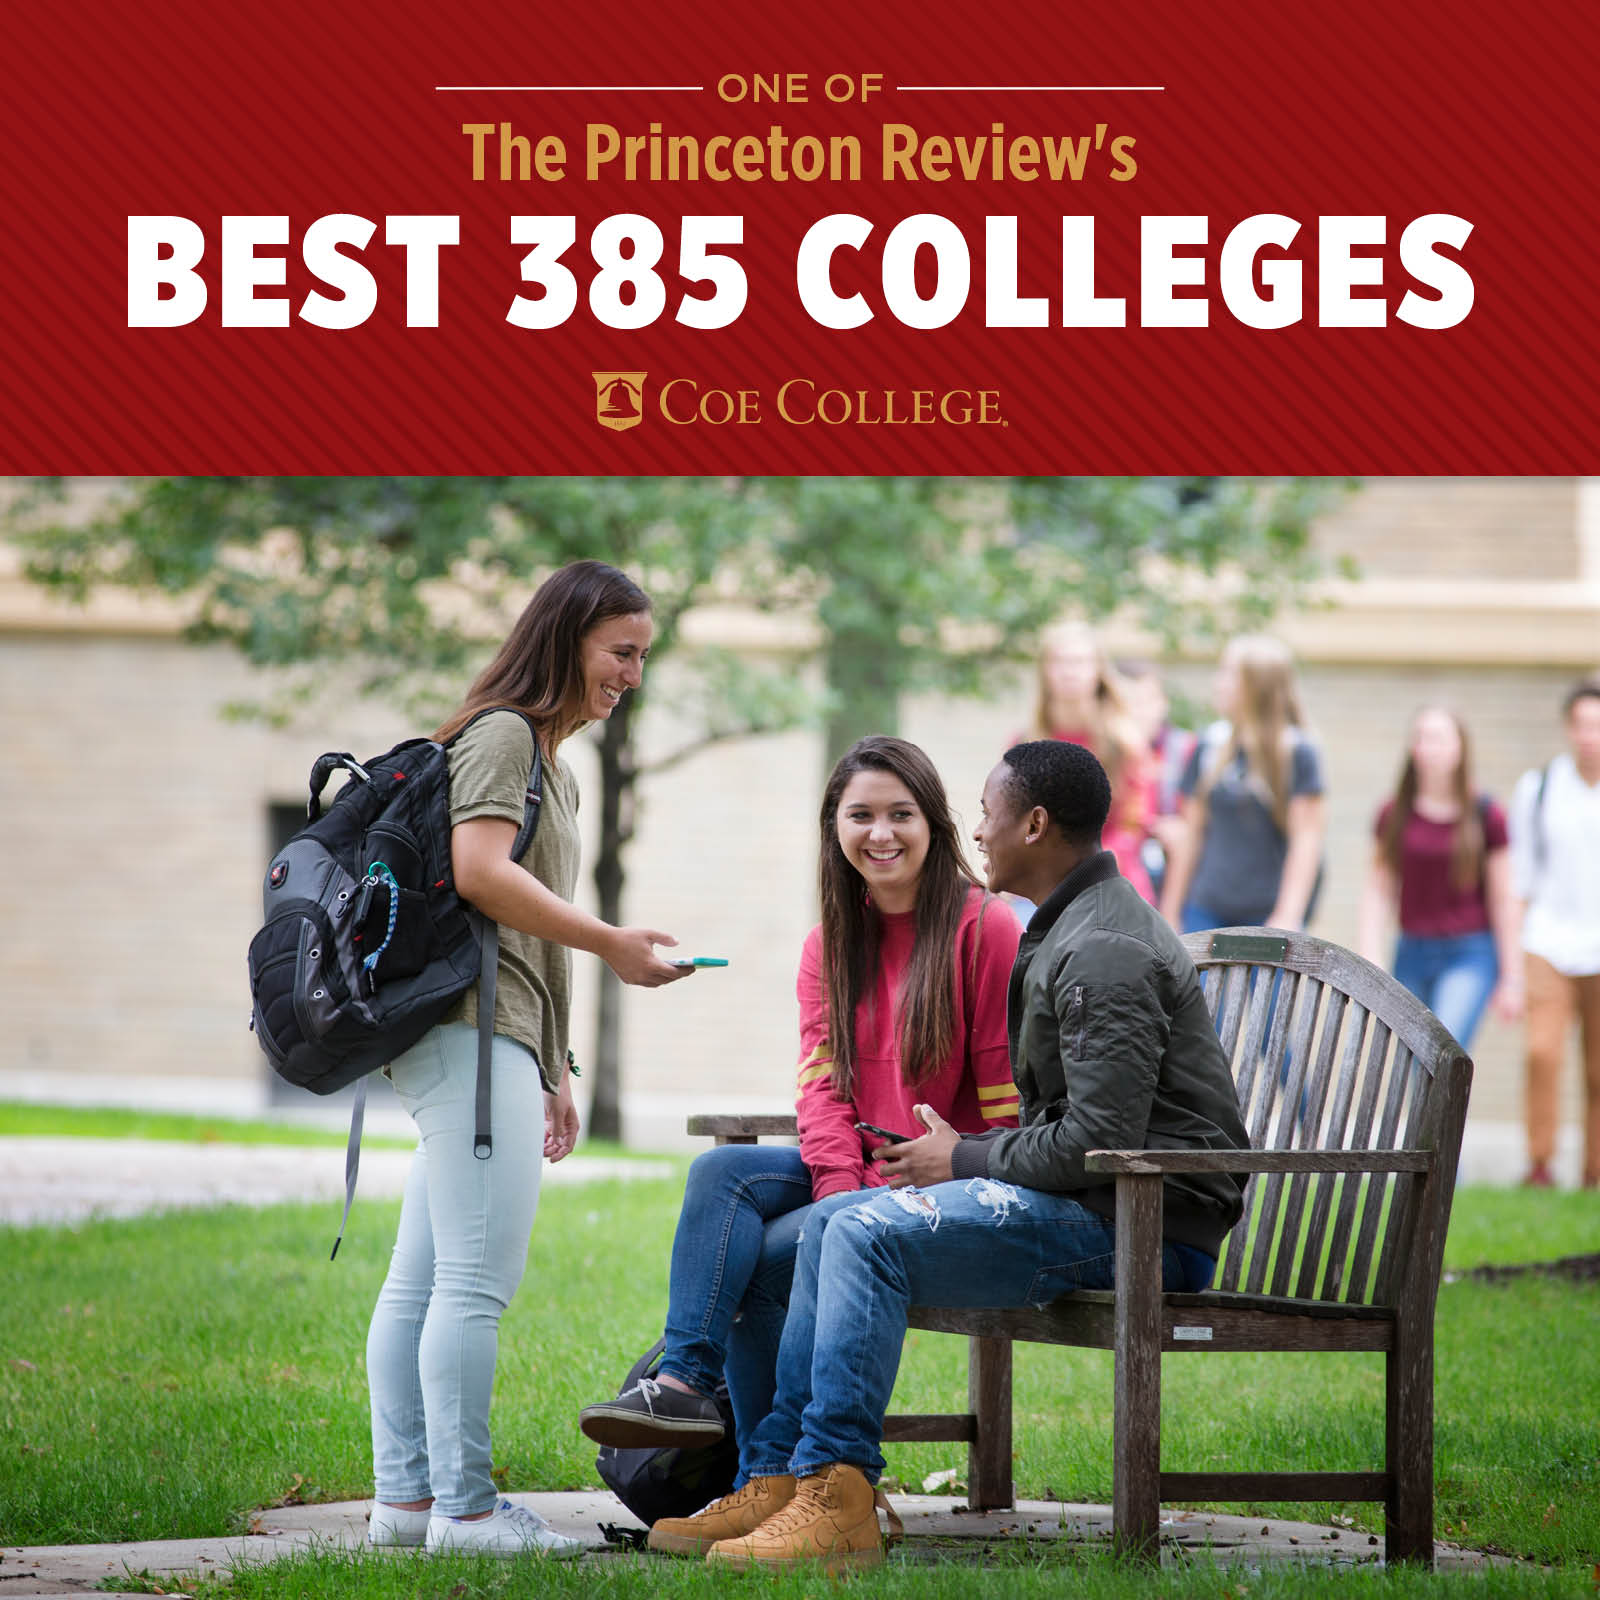 The Princeton Review's Best 385 Colleges